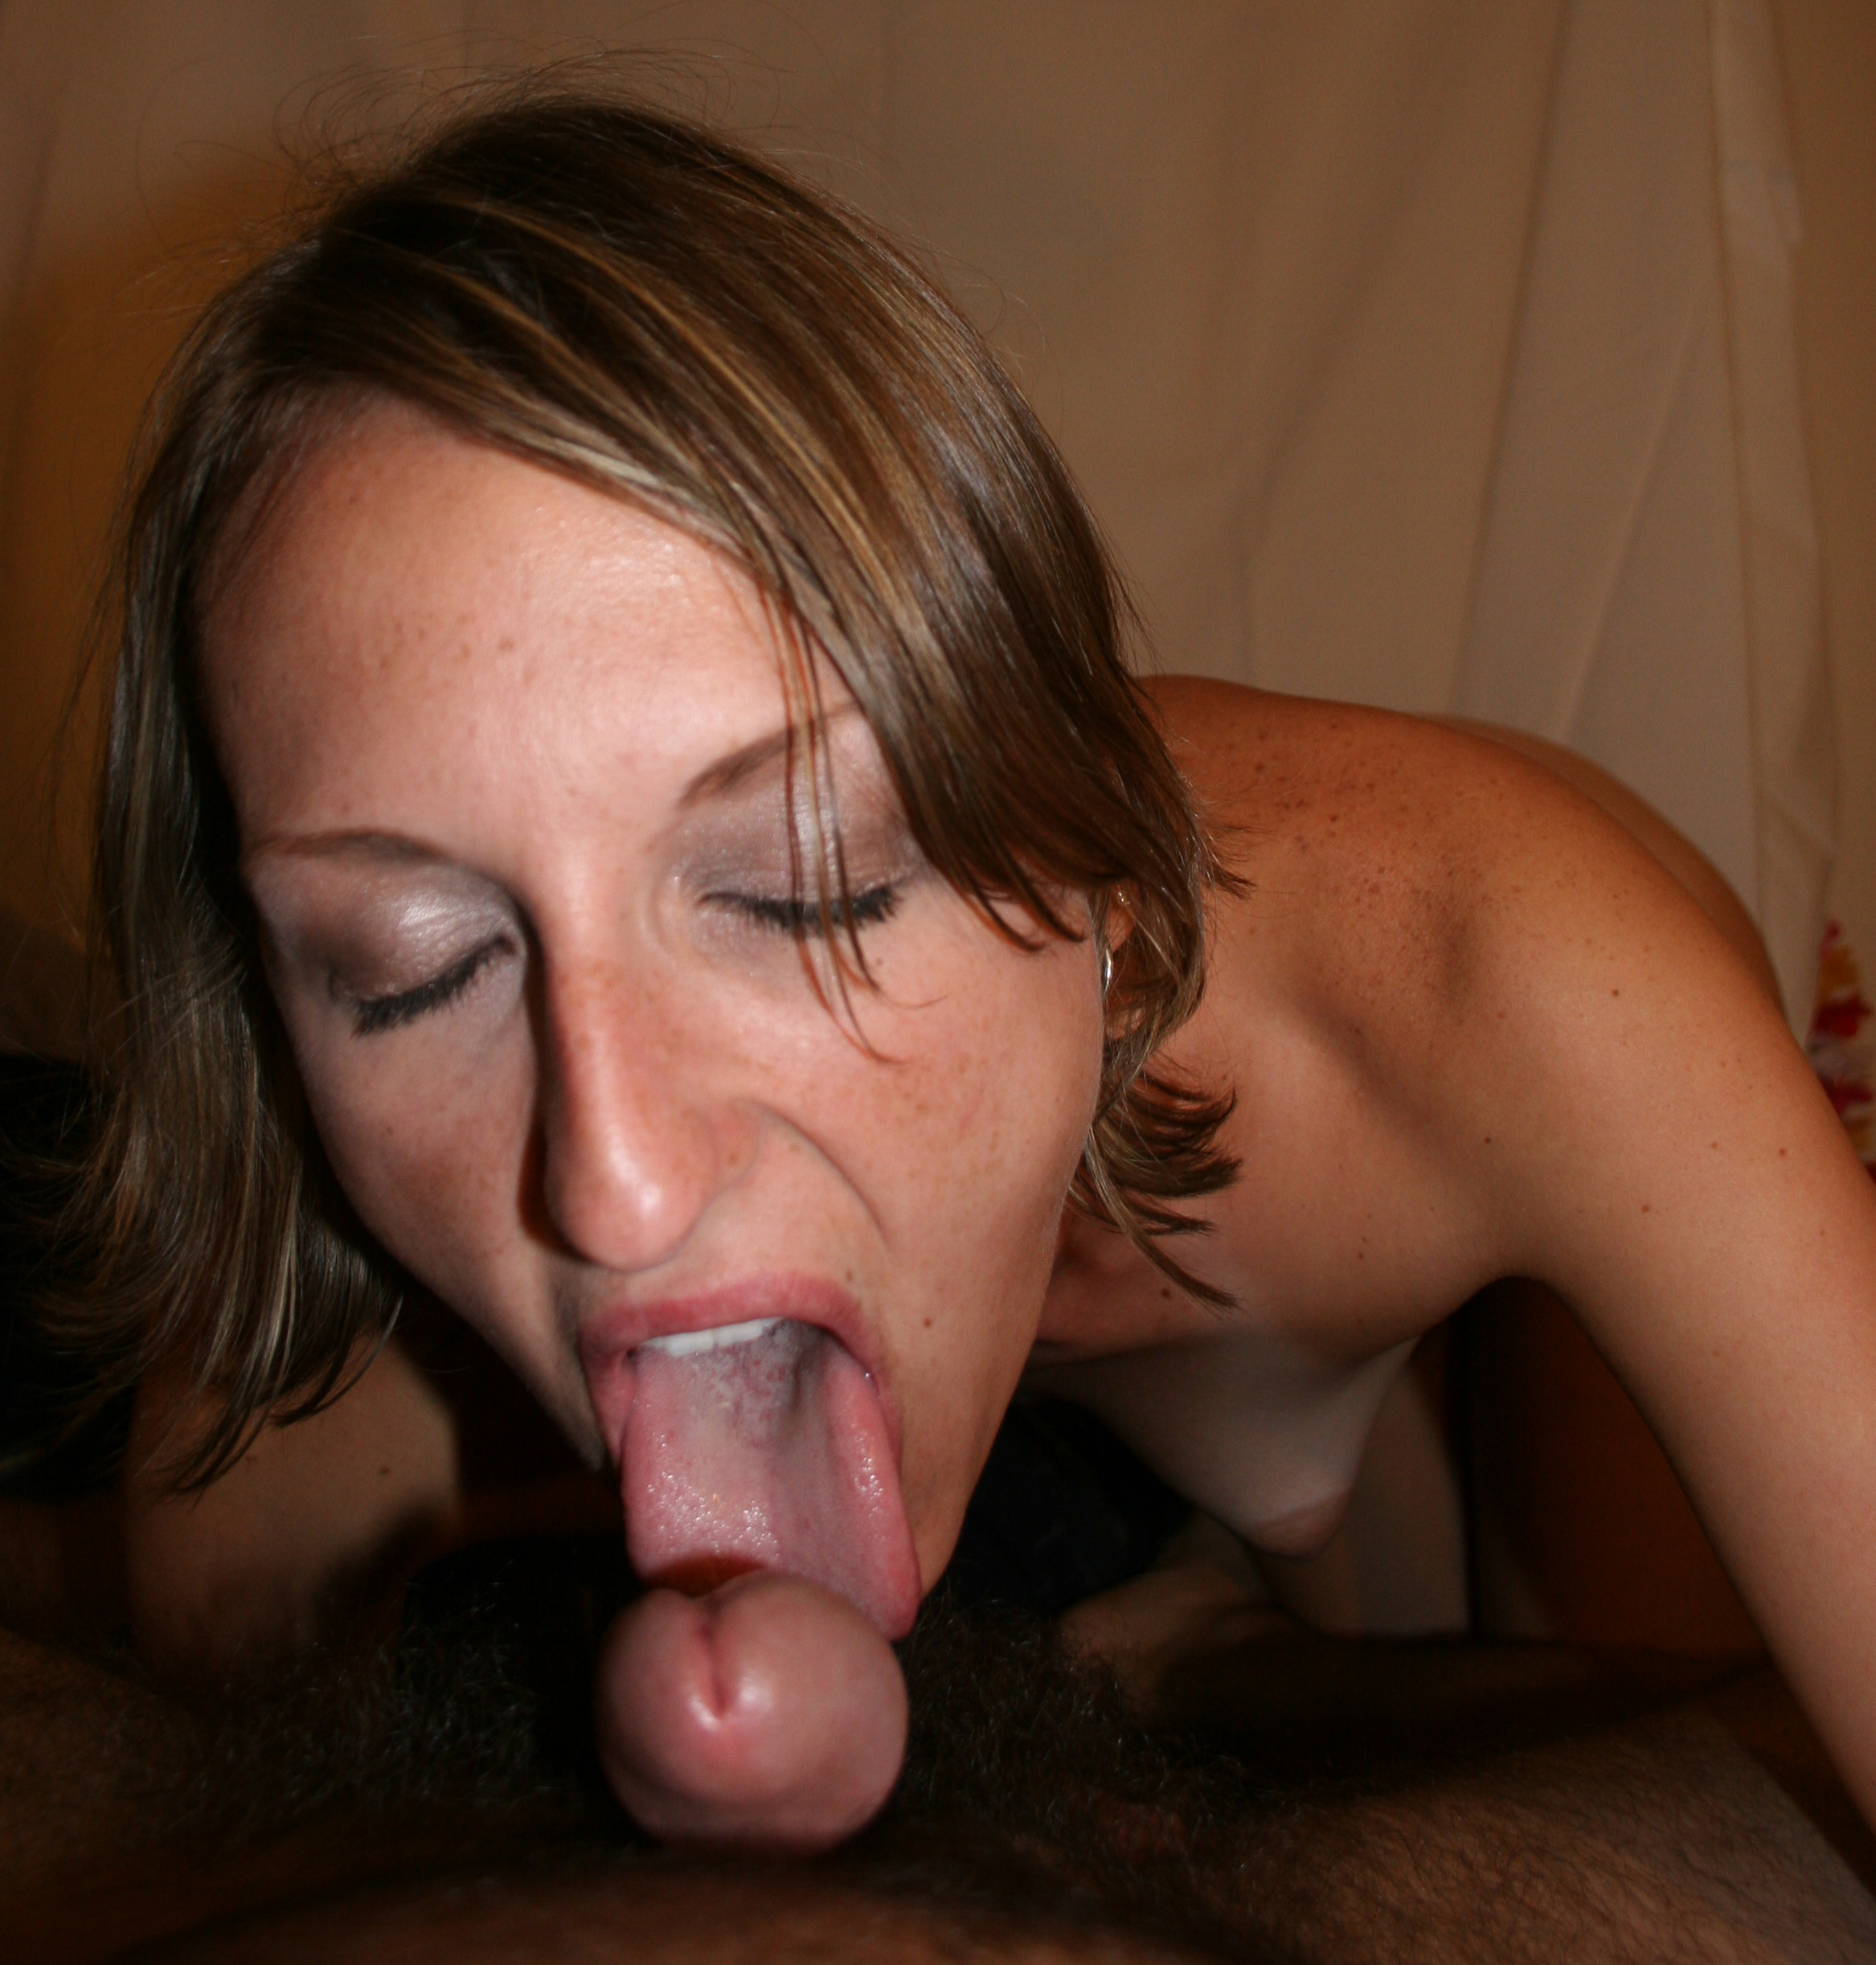 Filthy mouthed whore getting fucked